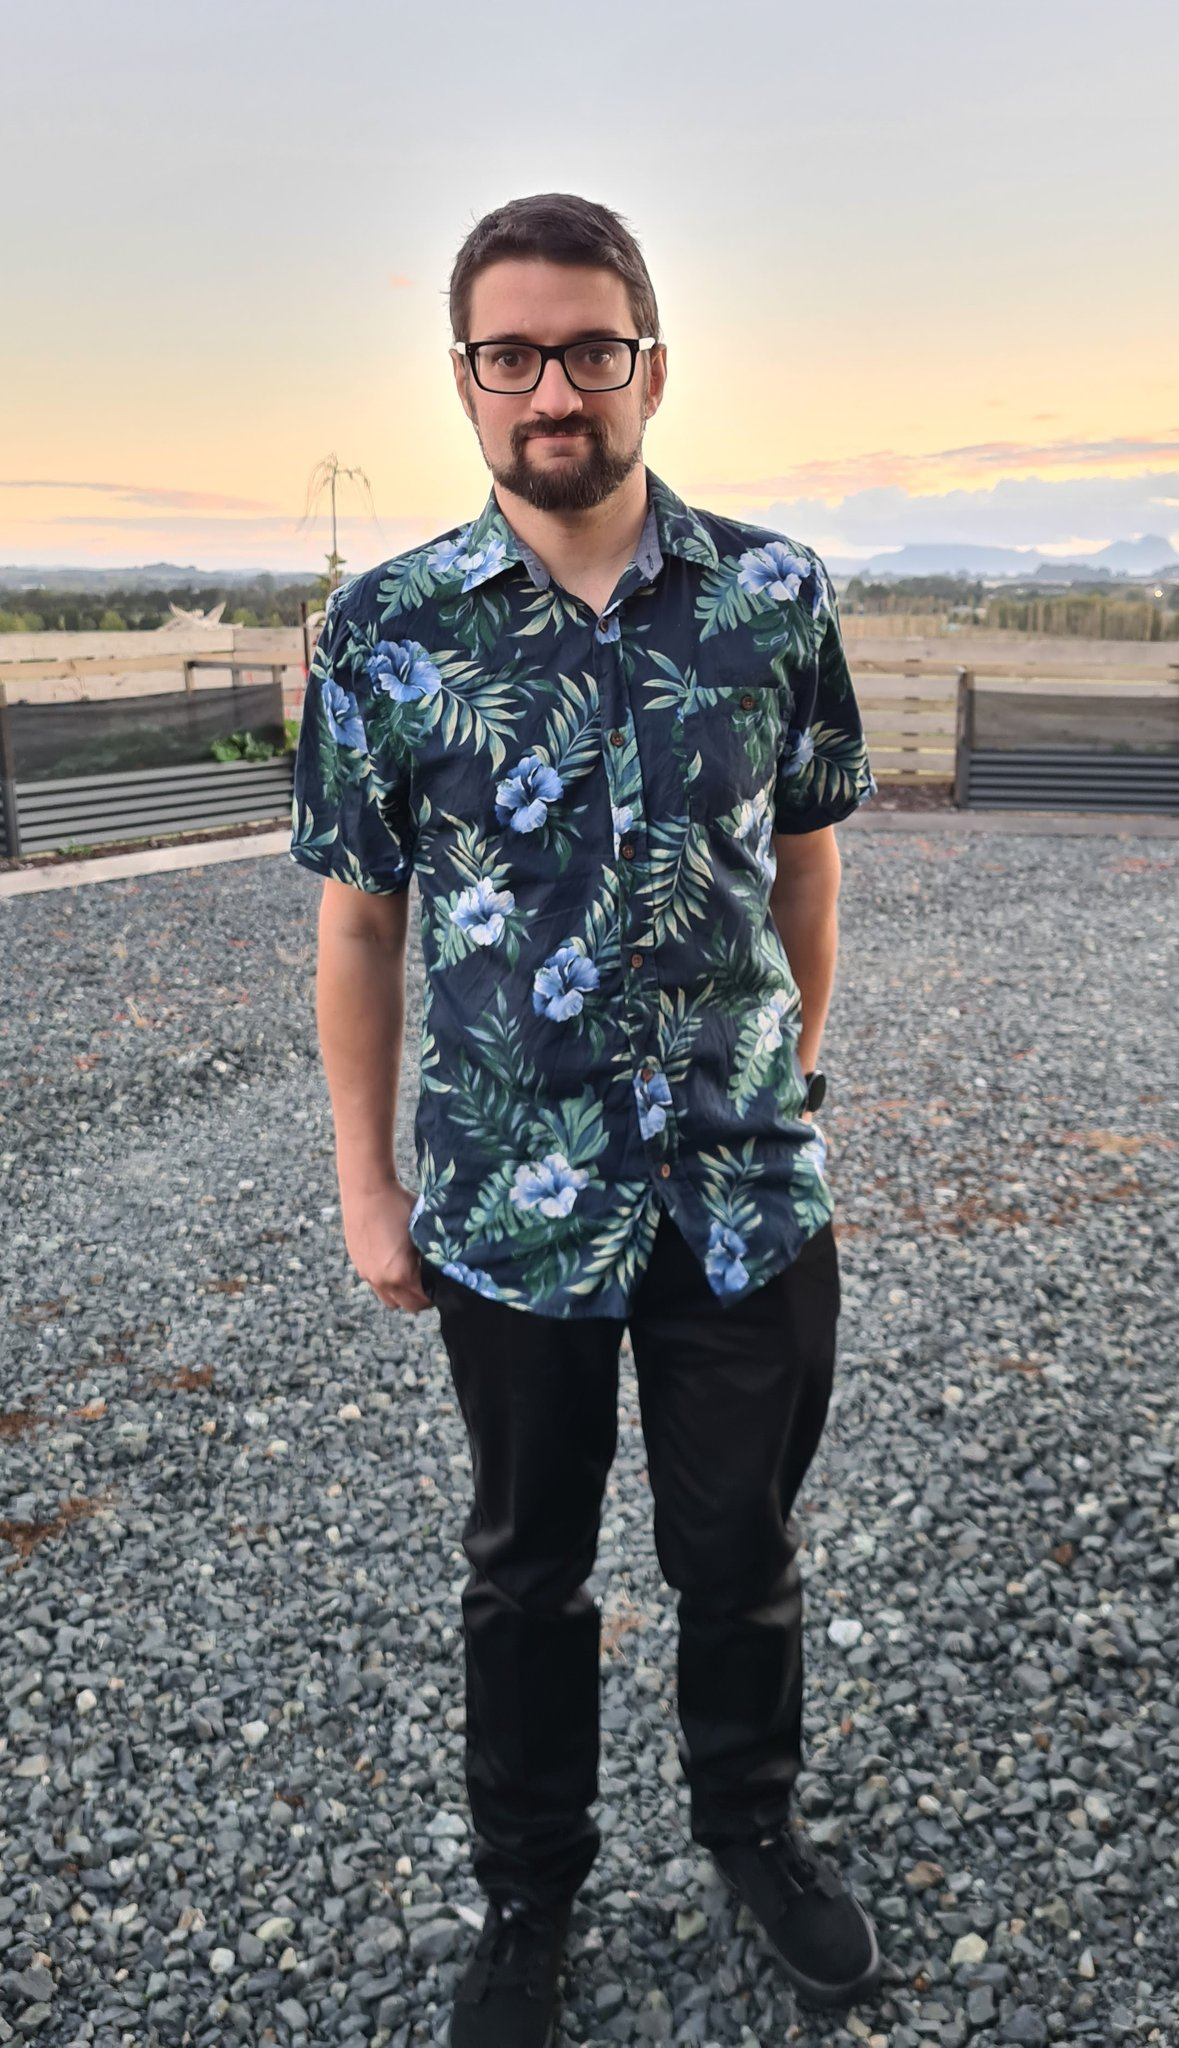 A picture of me in a dark blue and green patterned shirt, and black shoes and pants, wearing black framed glasses.  I have short brown hair, and a trimmed beard.  I am standing against a background with the sun just coming up